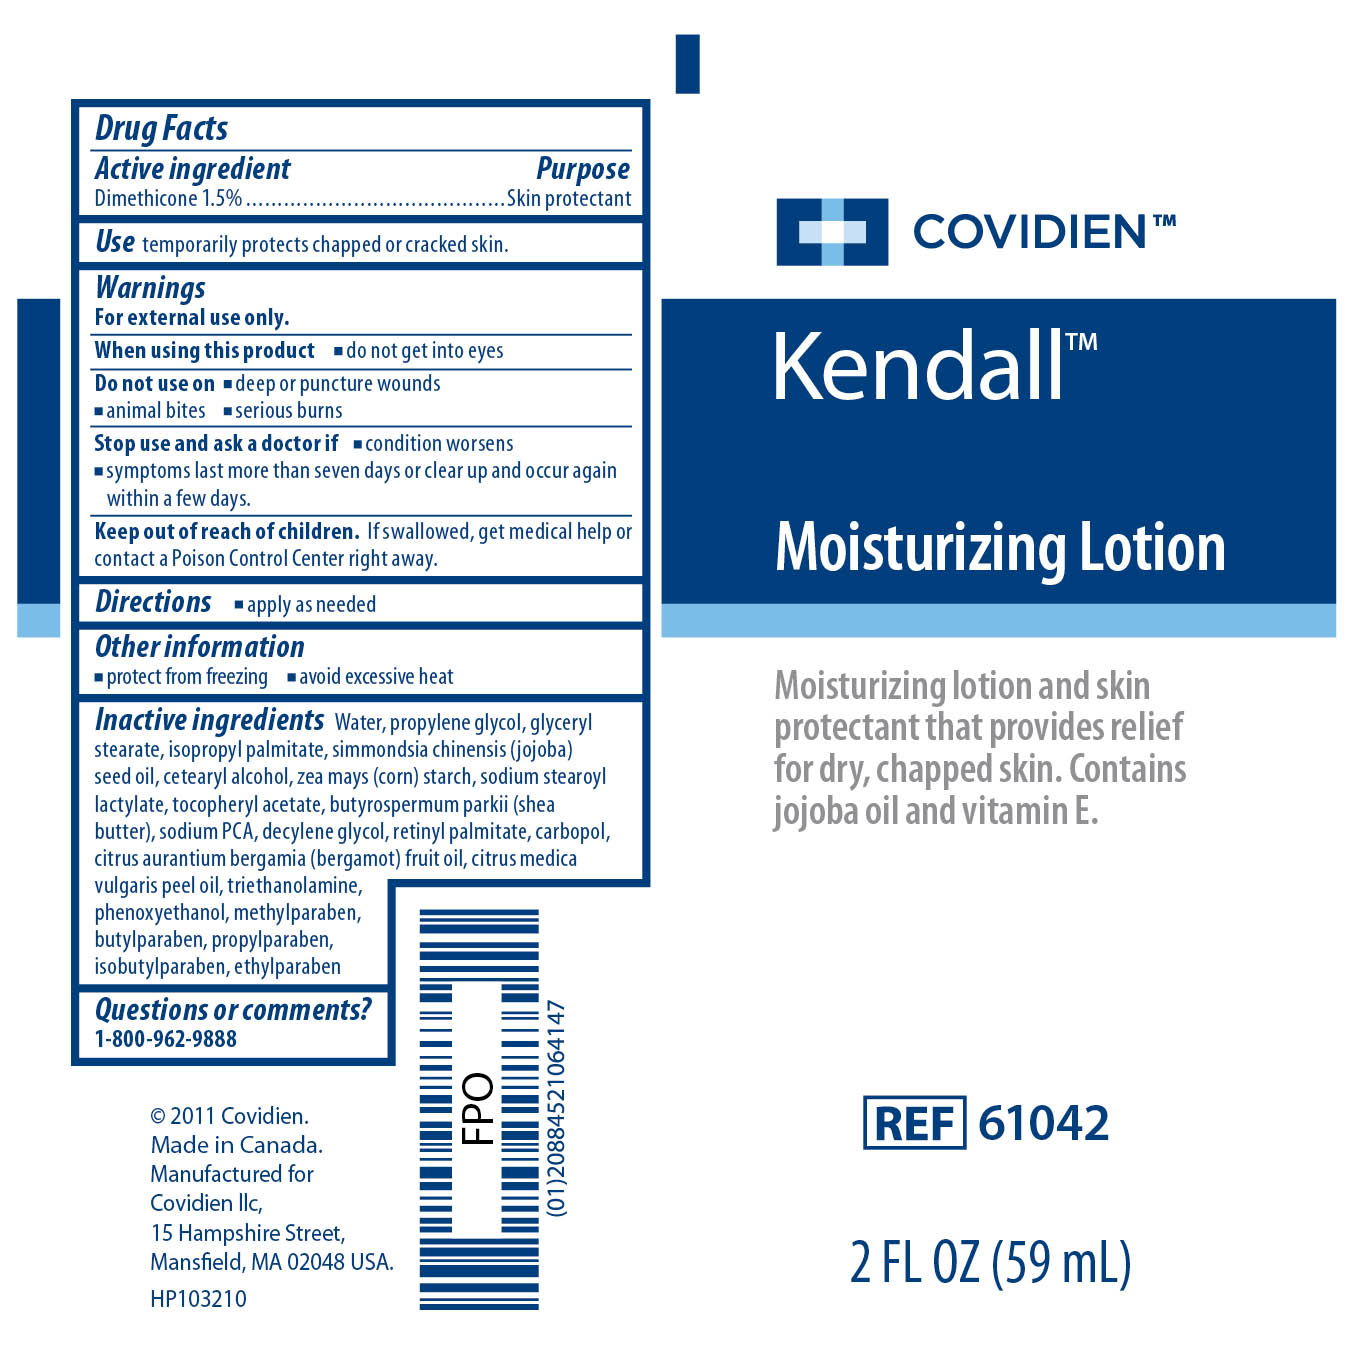 Image of Kendall Moisturizing Lotion 2 Fl oz Label